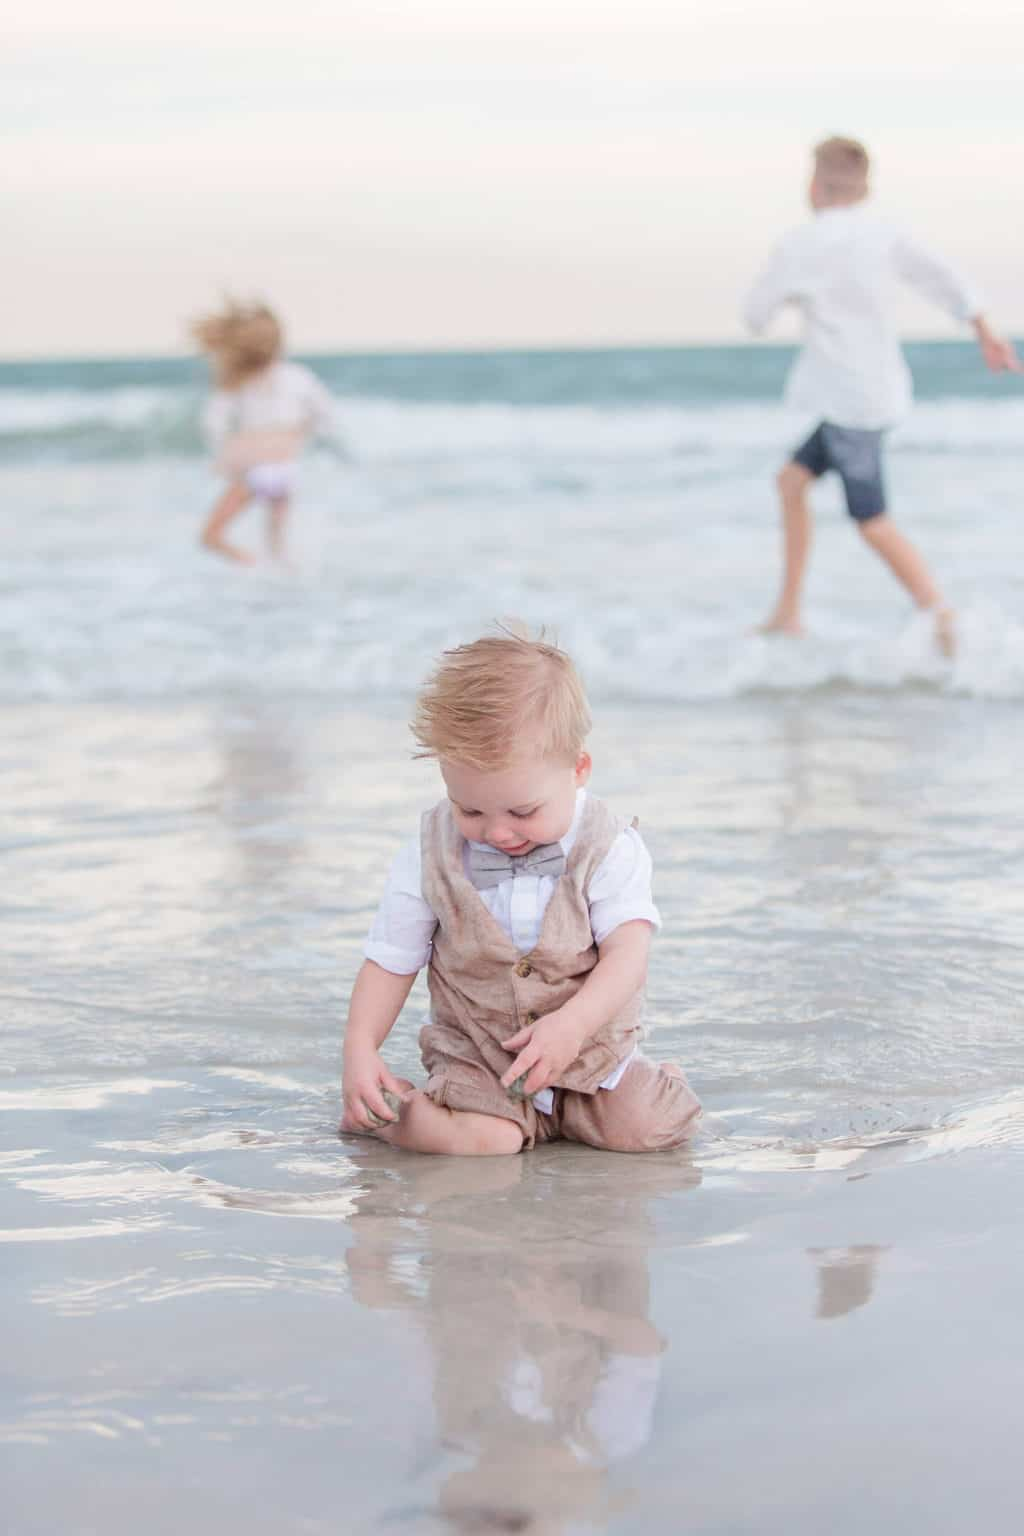 little boy playing in ocean water at the beach